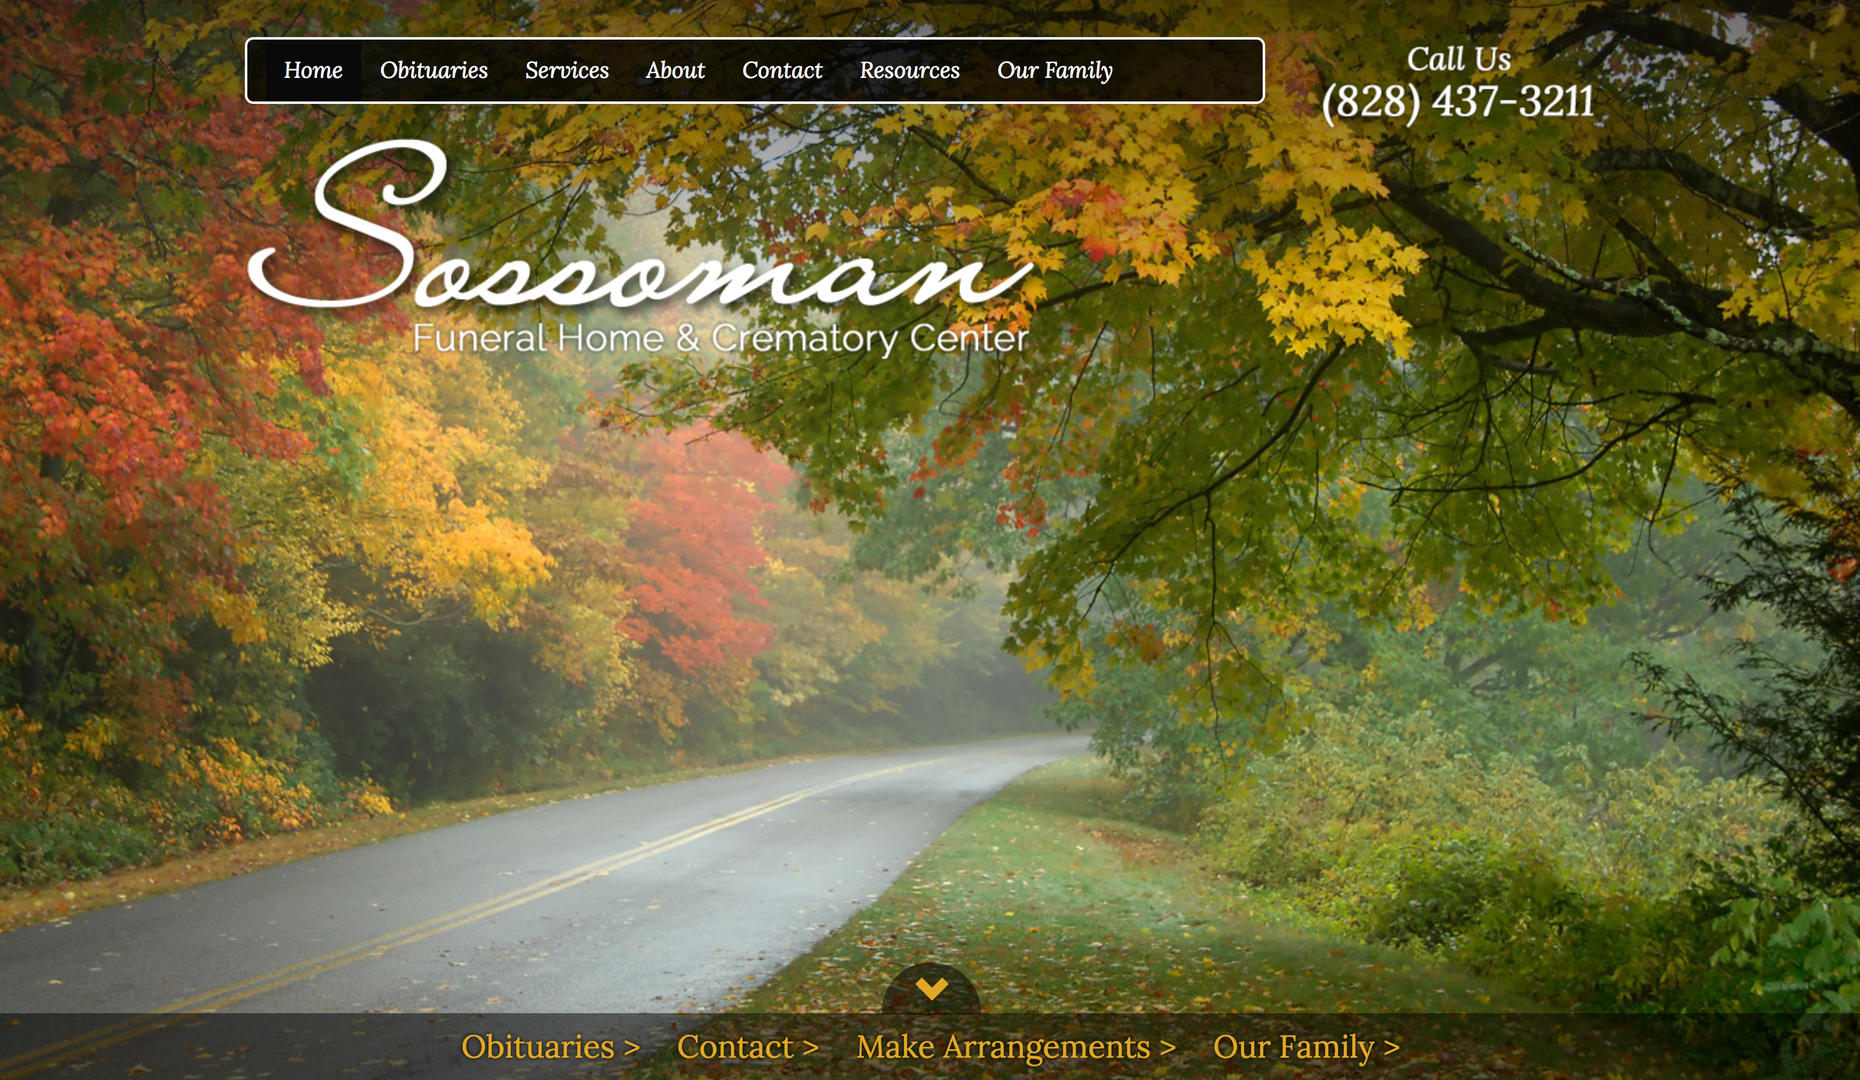 Sossoman Funeral Home website